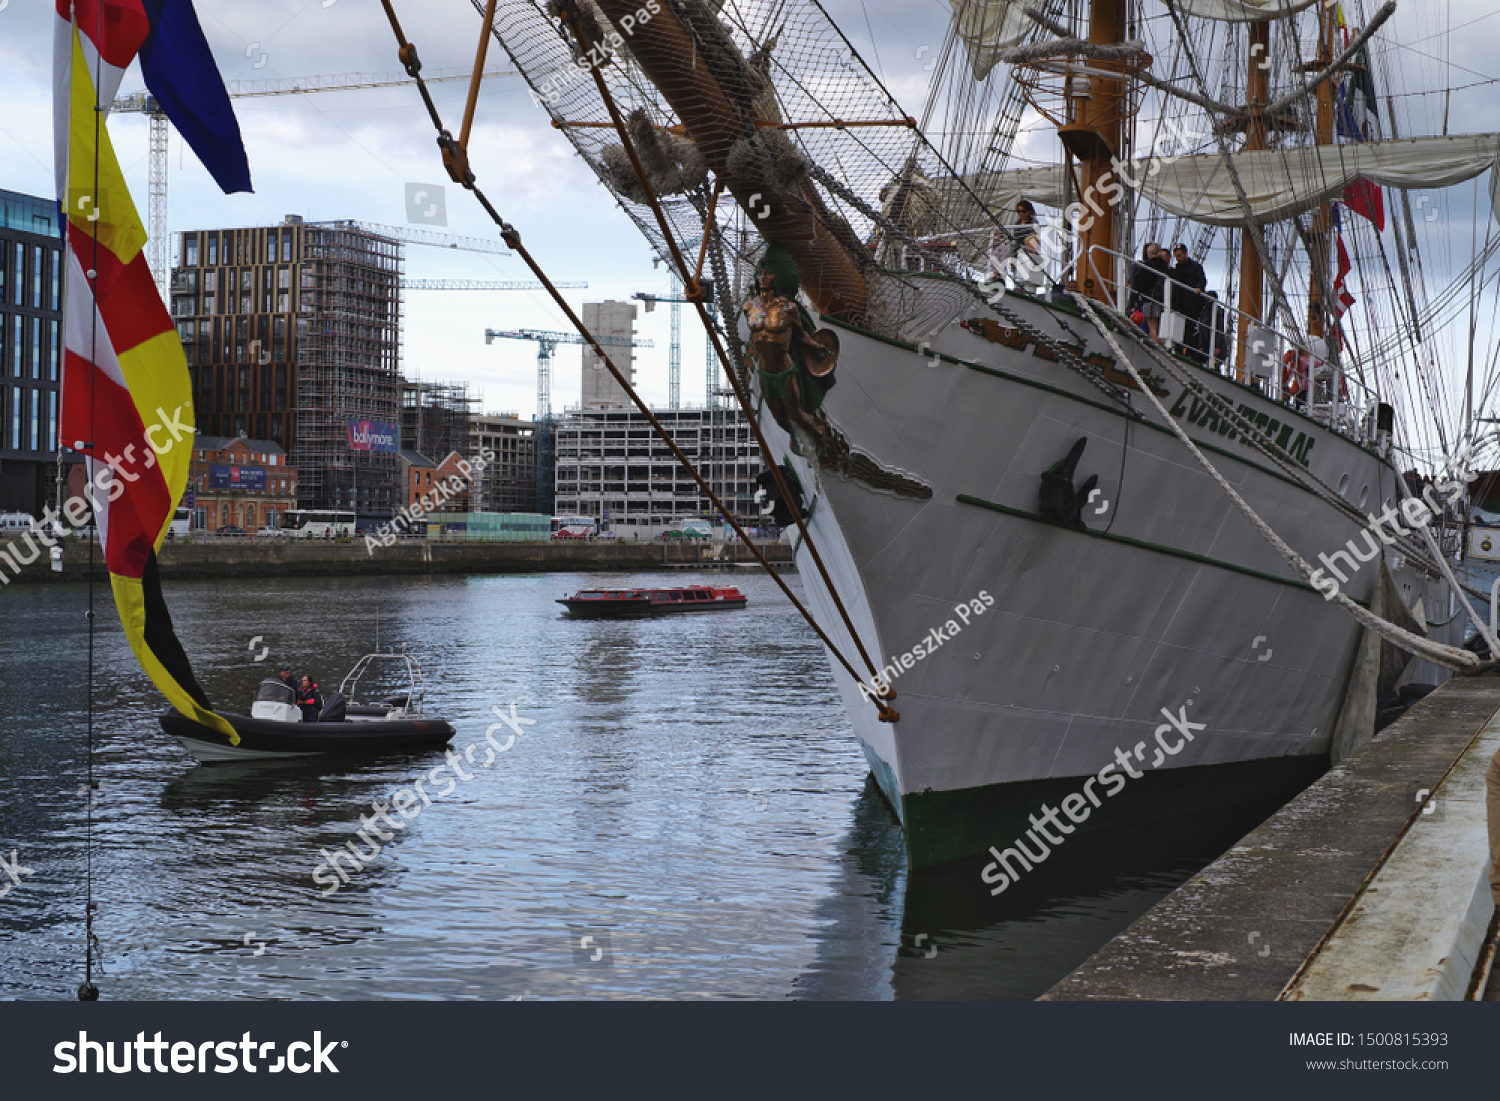 DUBLIN, IRELAND - SEPTEMBER 7, 2019: Mexican Navy training ship Cuauhtemoc docked in Dublin, on the River Liffey. Bow view, with signal flags in the front.